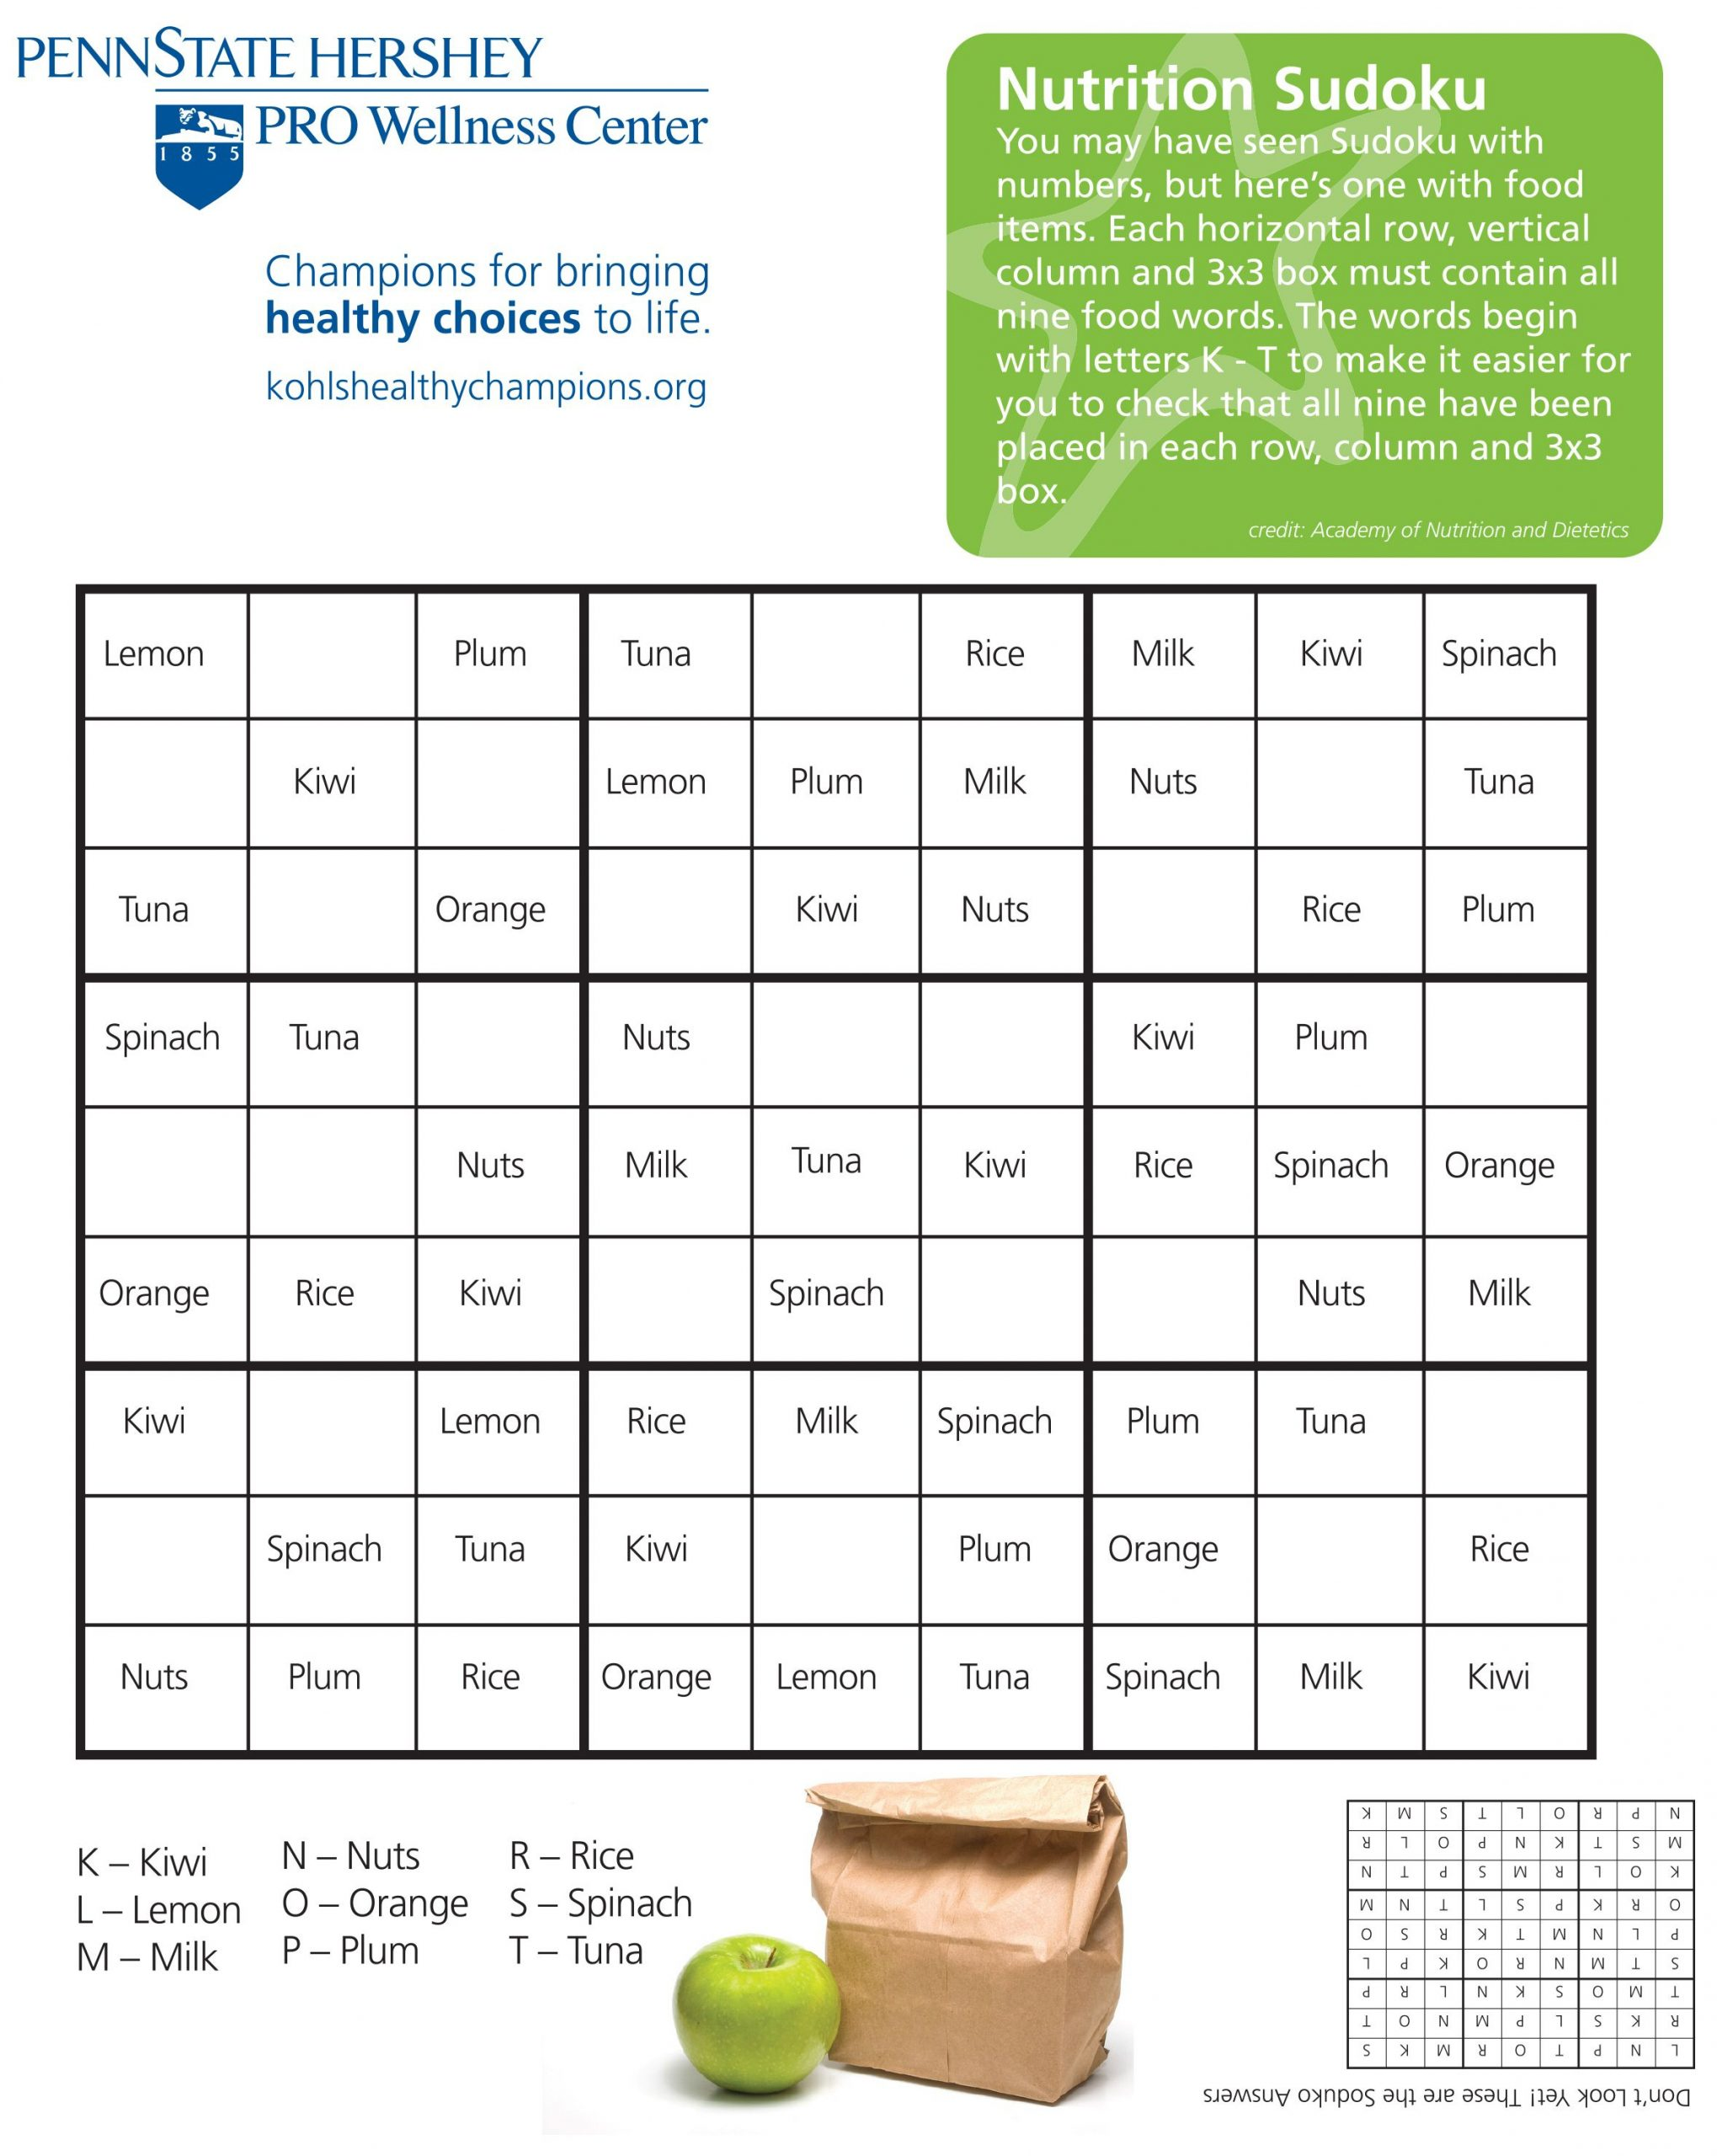 Nutrition Sudoku | Food Words, Learning Theory, Healthy Choices